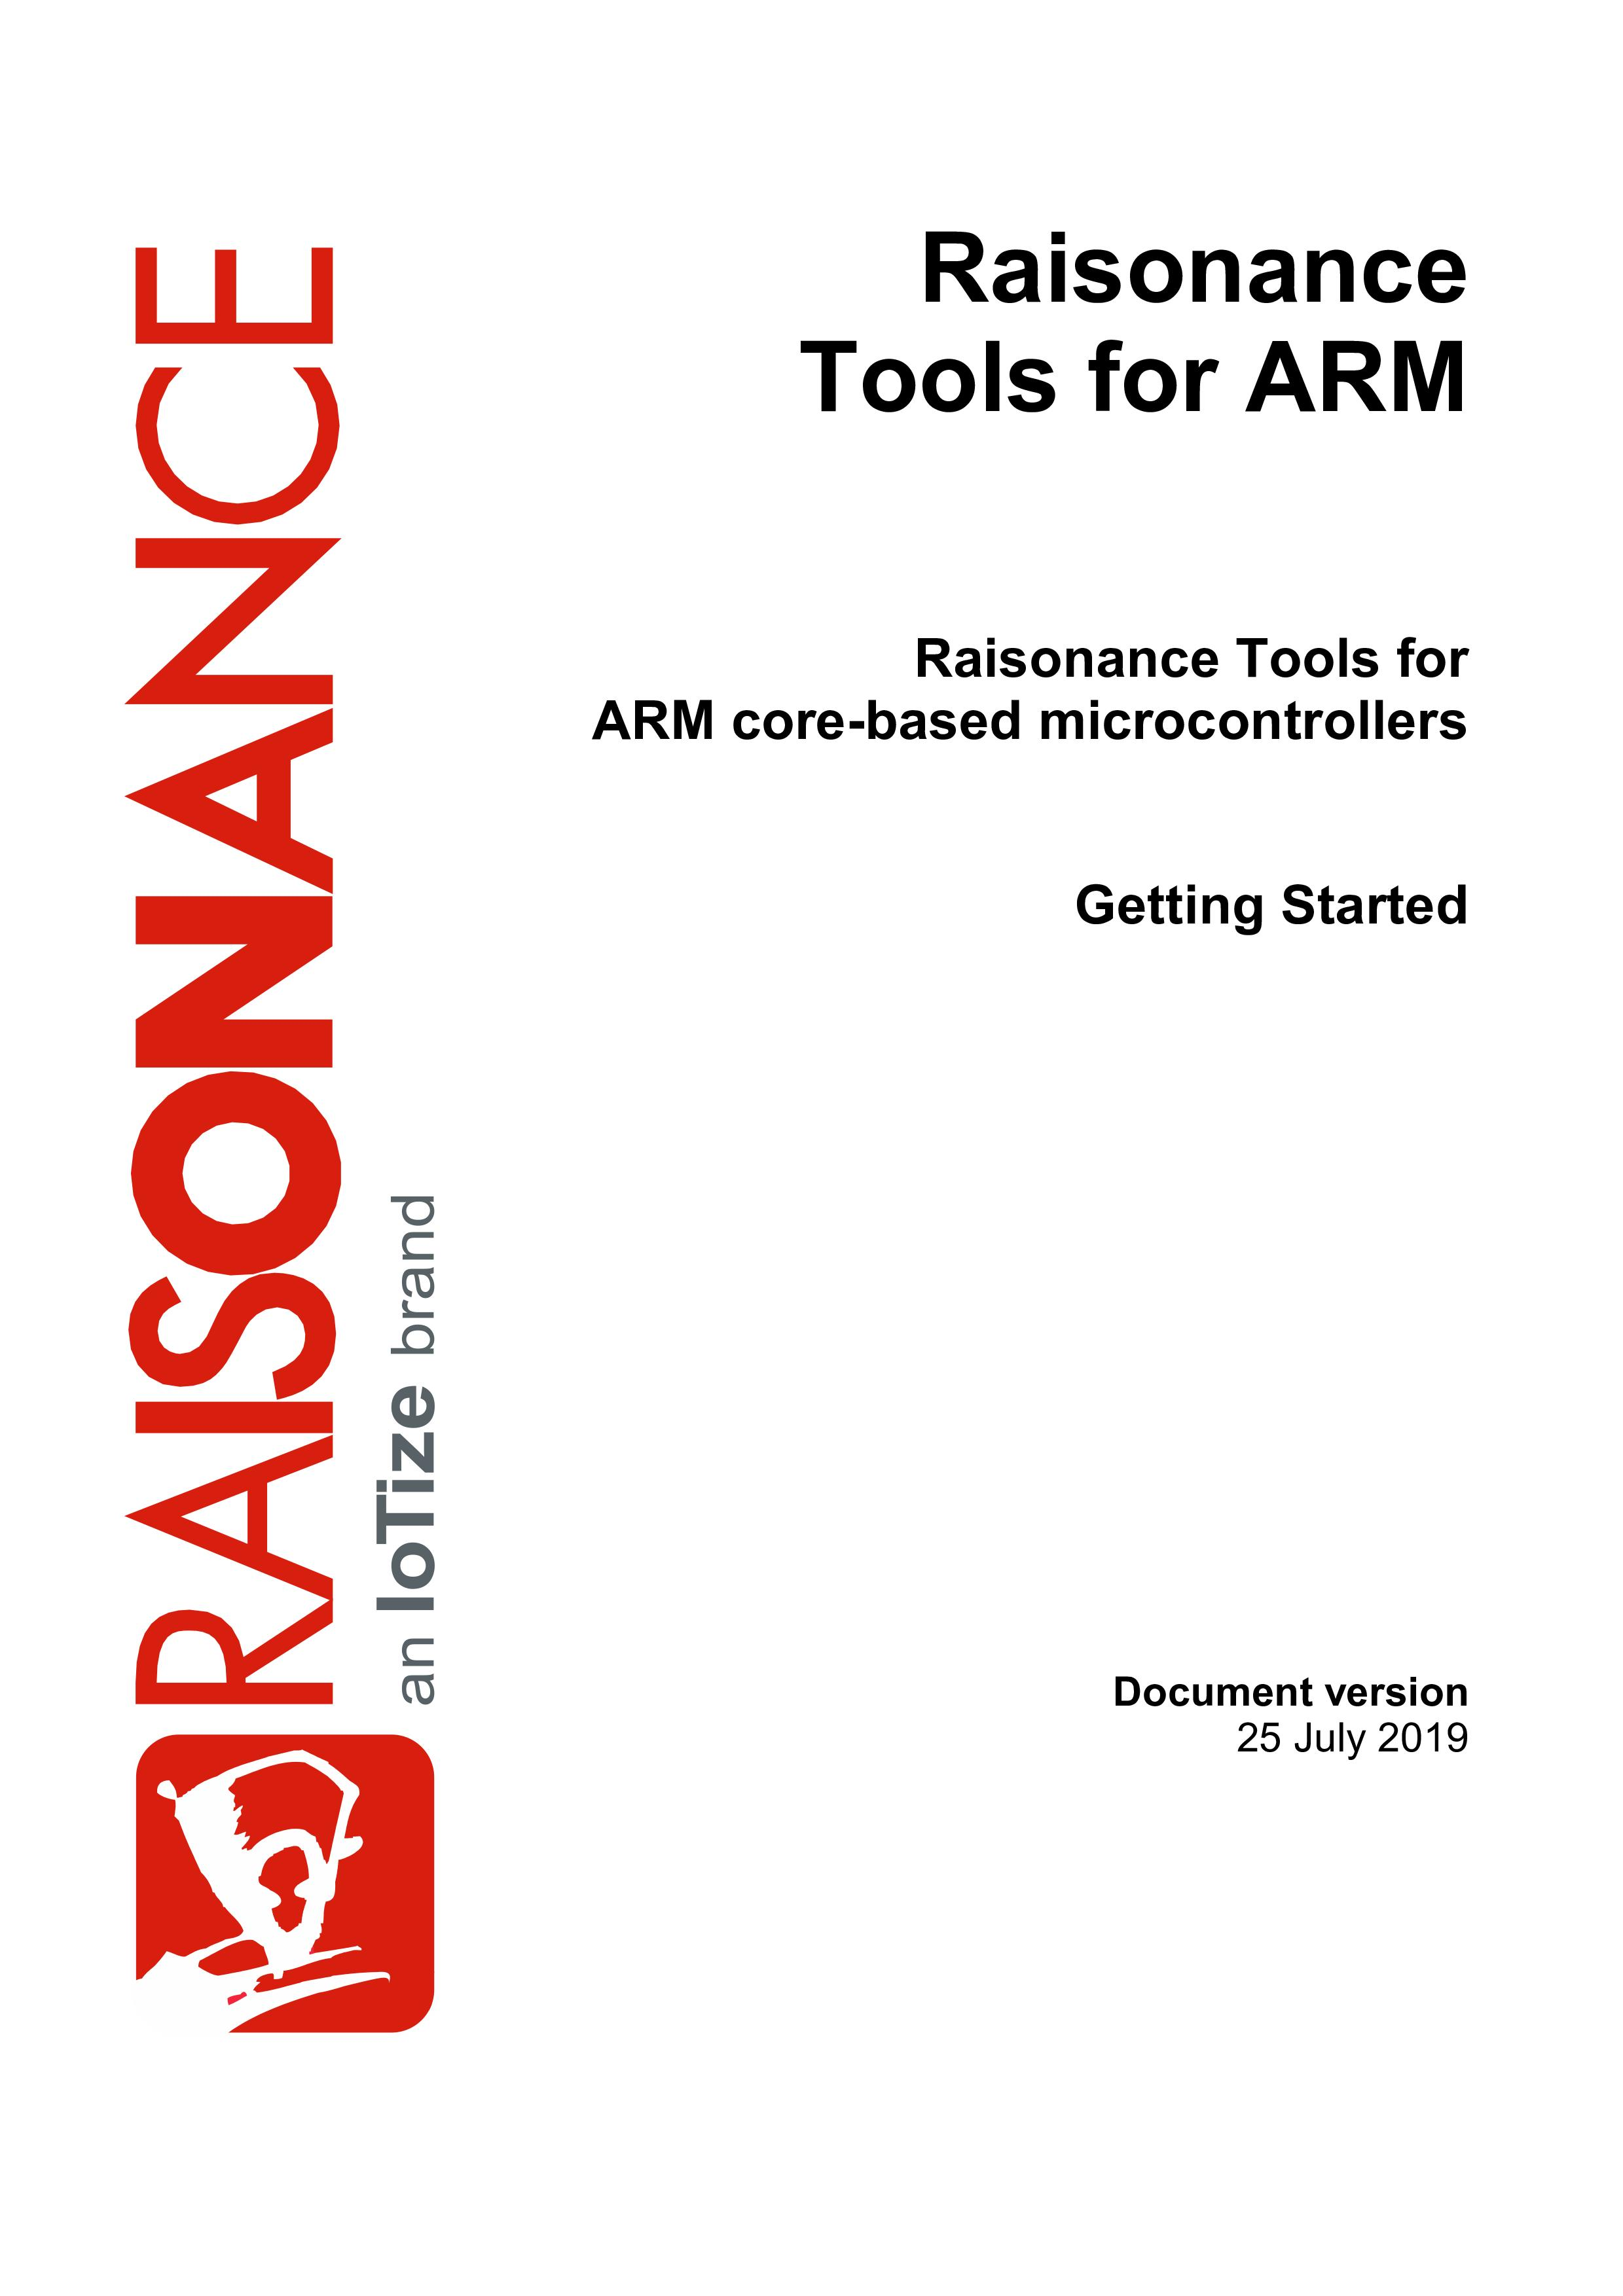 Raisonance Tools for ARM Families